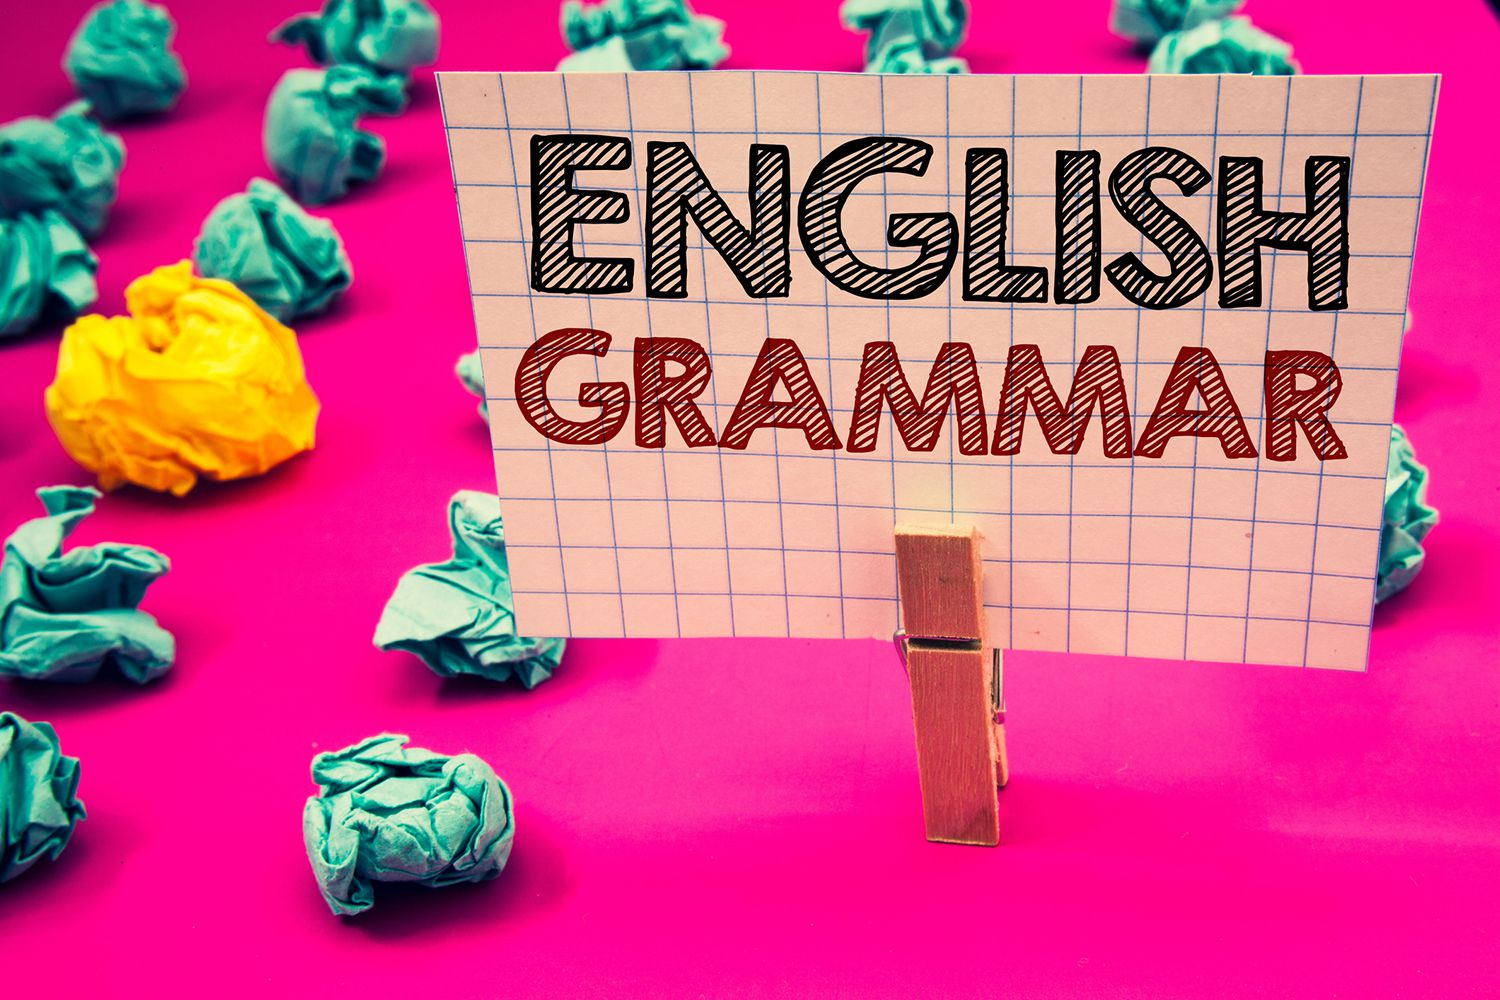 Inanimate Noun Definition And Examples